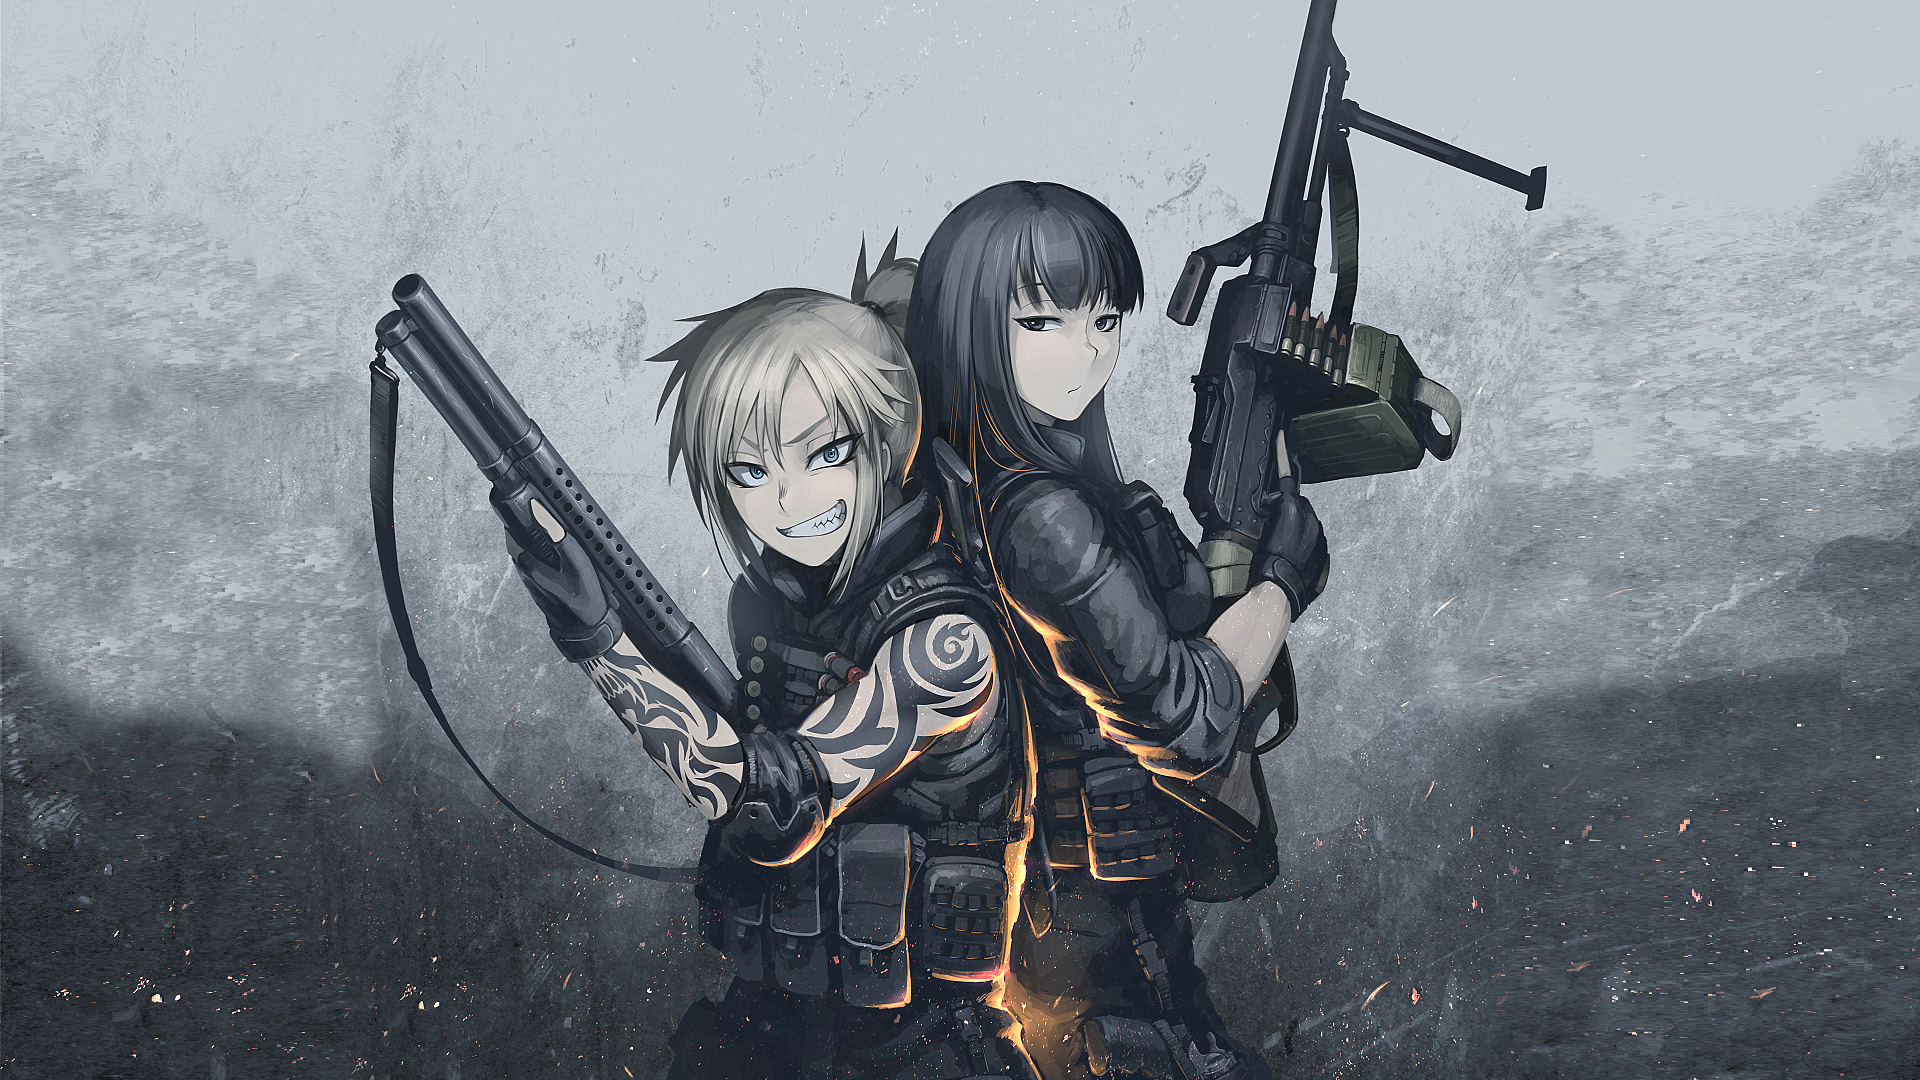 Original hd wallpaper background image 1920x1080 id - Gun girl anime ...